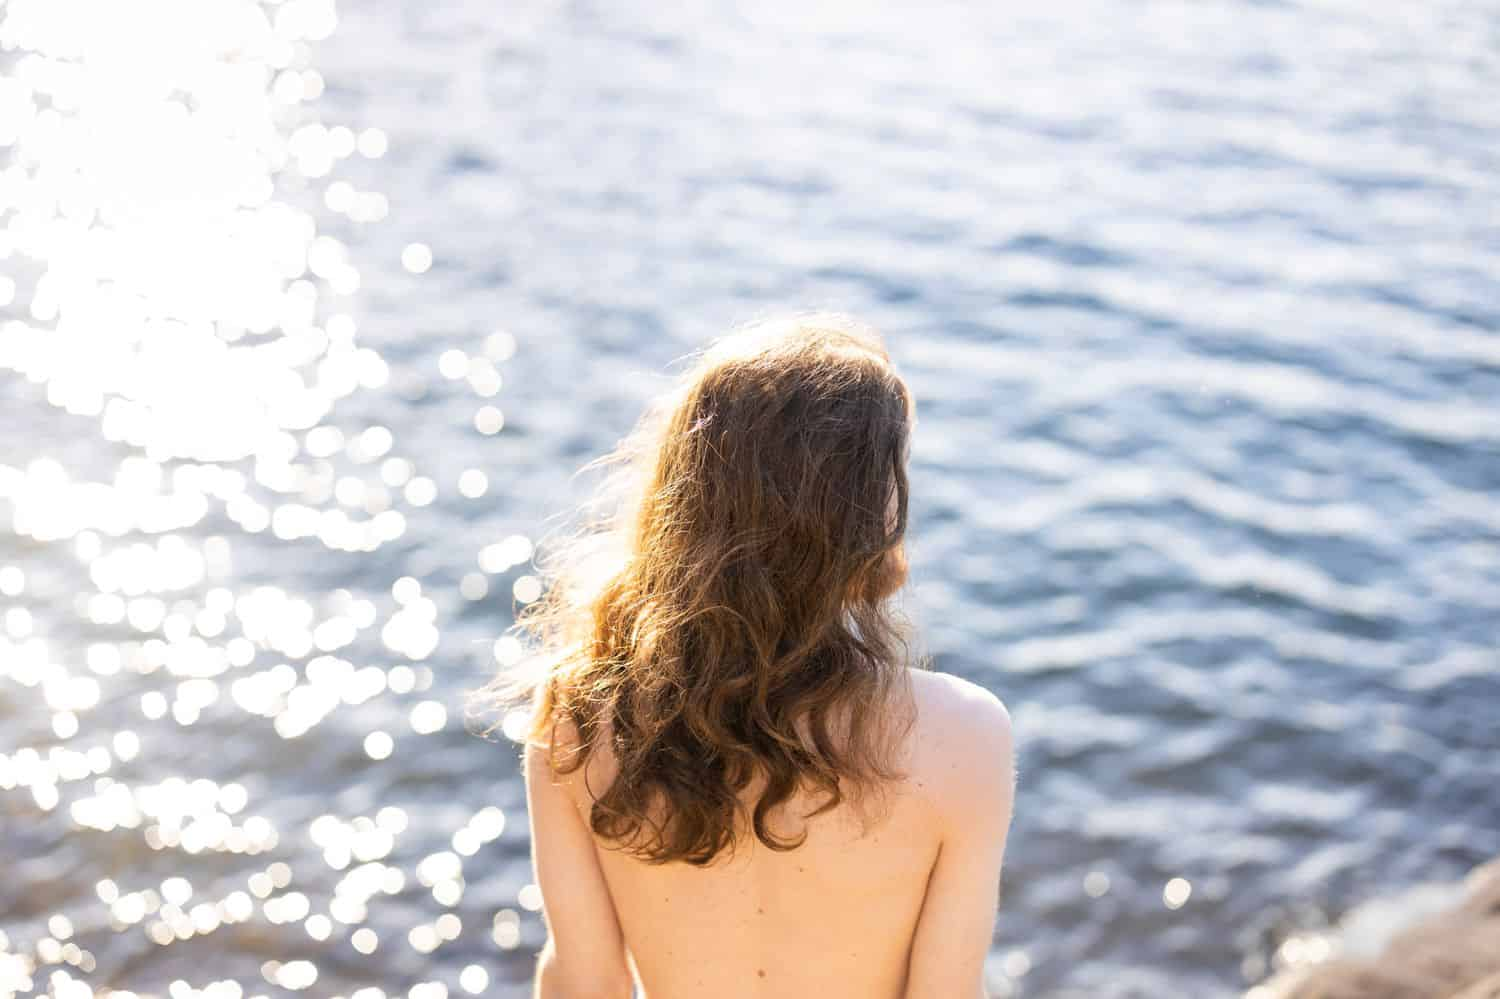 A person wearing no shirt is photographed sitting at the edge of the ocean by Sofia Angelina.